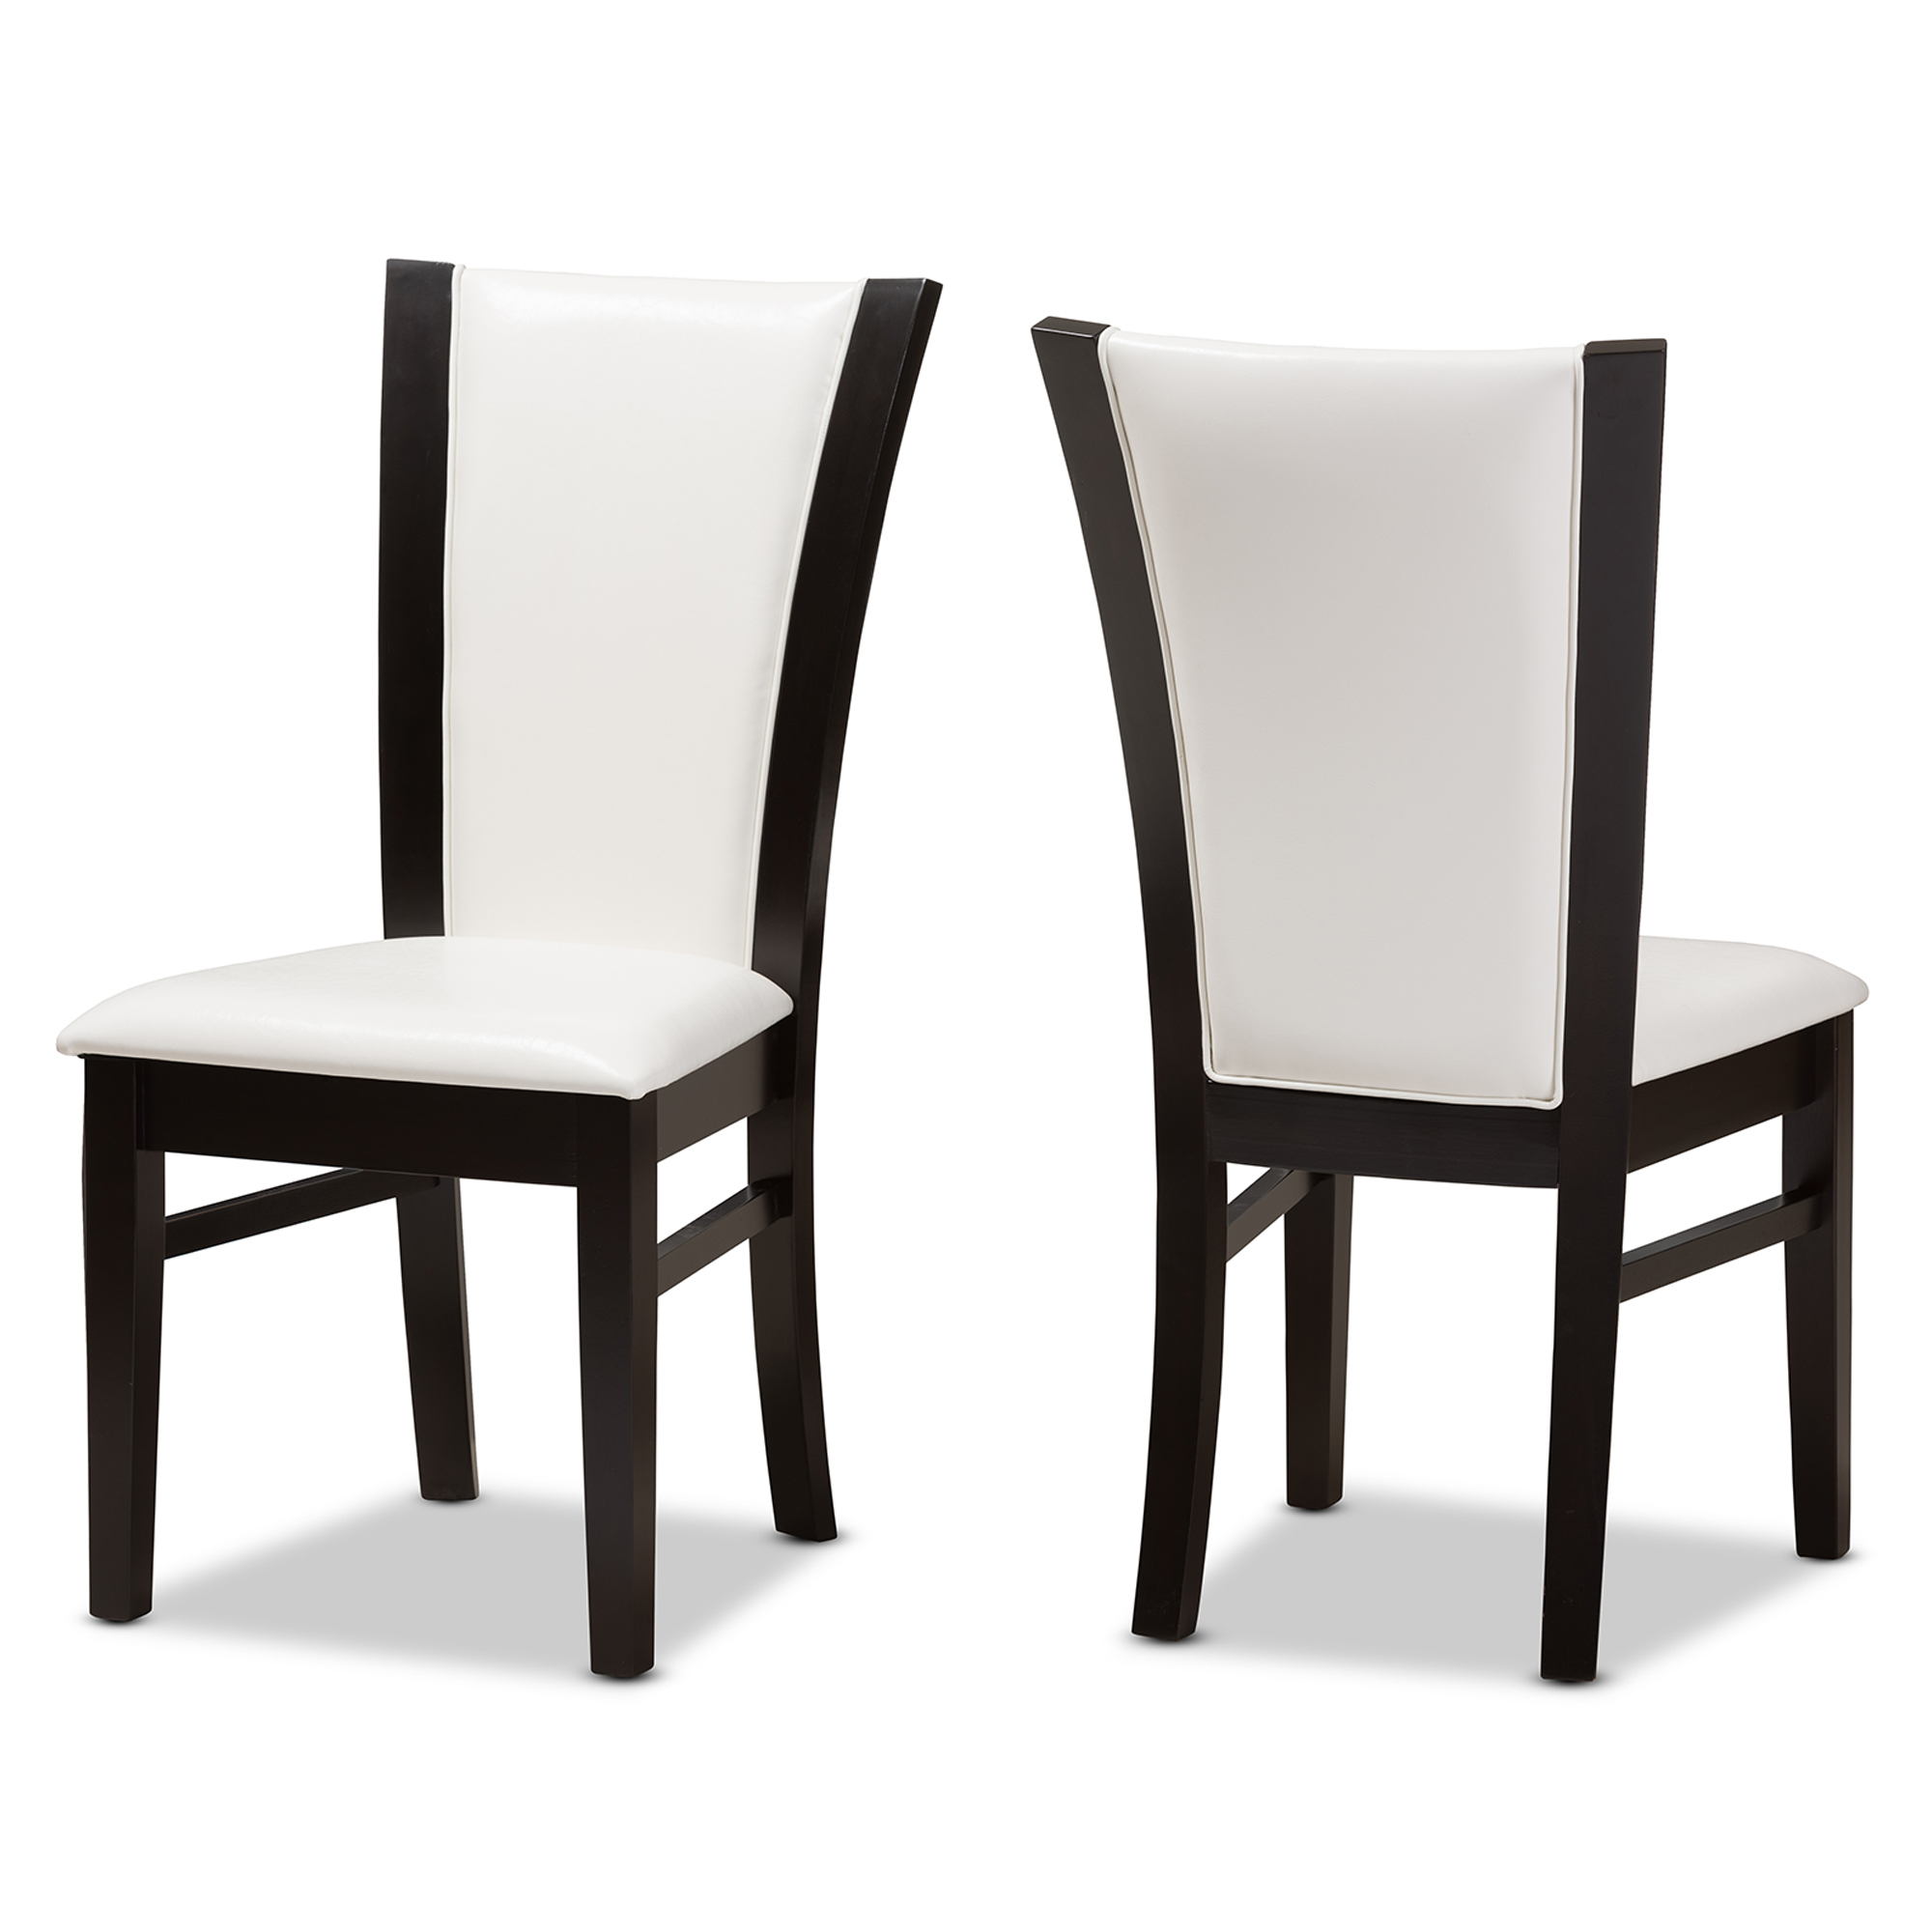 Baxton Studio Adley Modern And Contemporary Dark Brown Finished White Faux  Leather Dining Chair Set Of ...